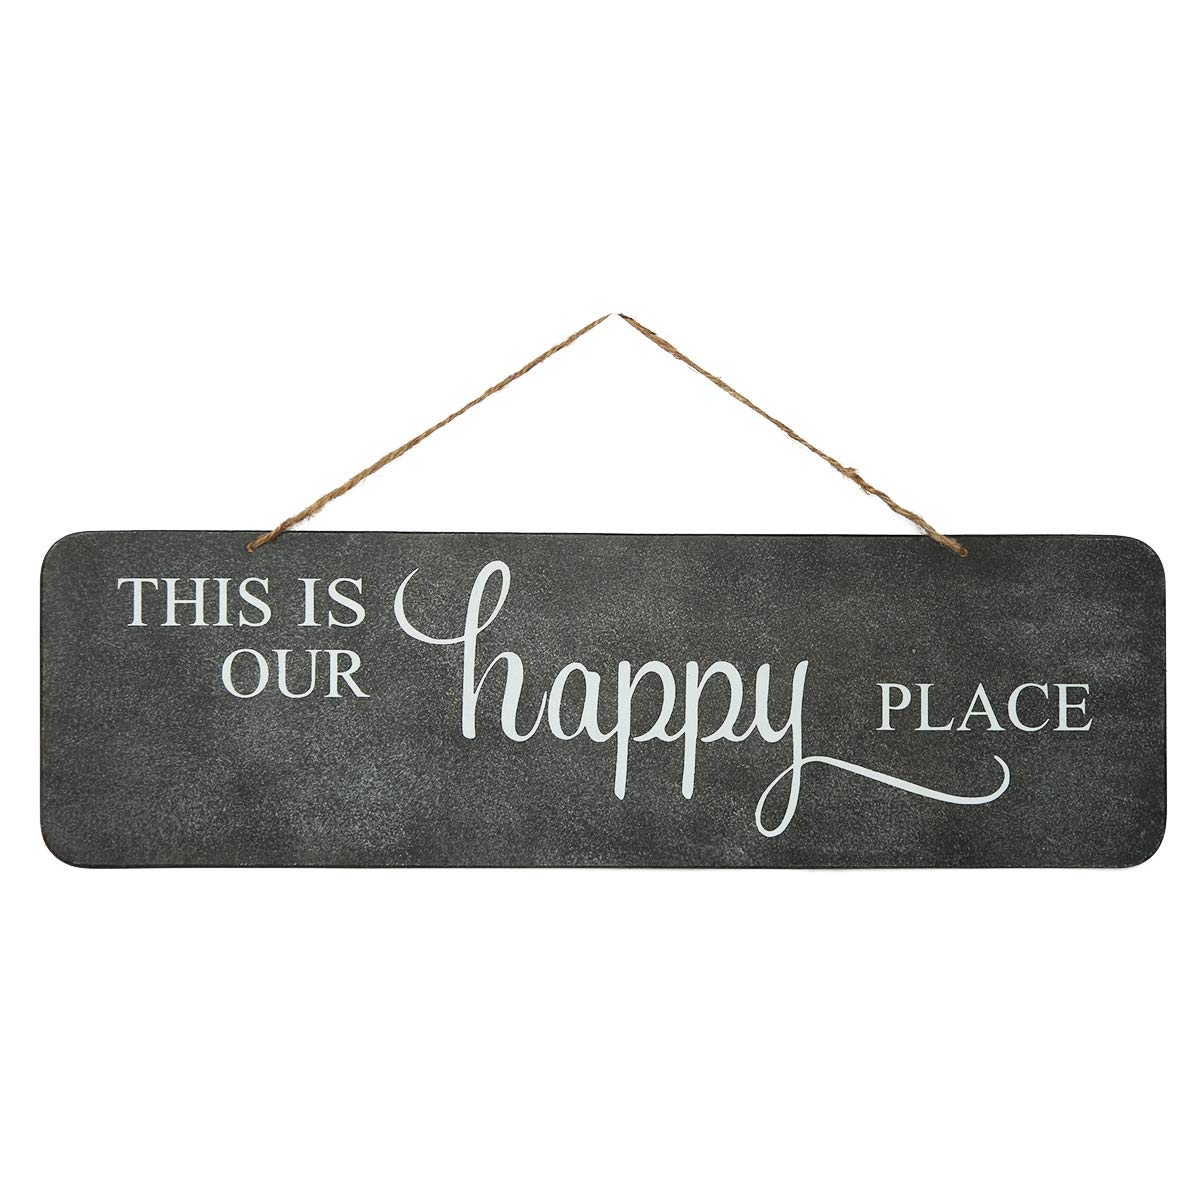 NIKKY HOME This is Our Happy Place Metal Wall Plaque Decorative Sign with Quote